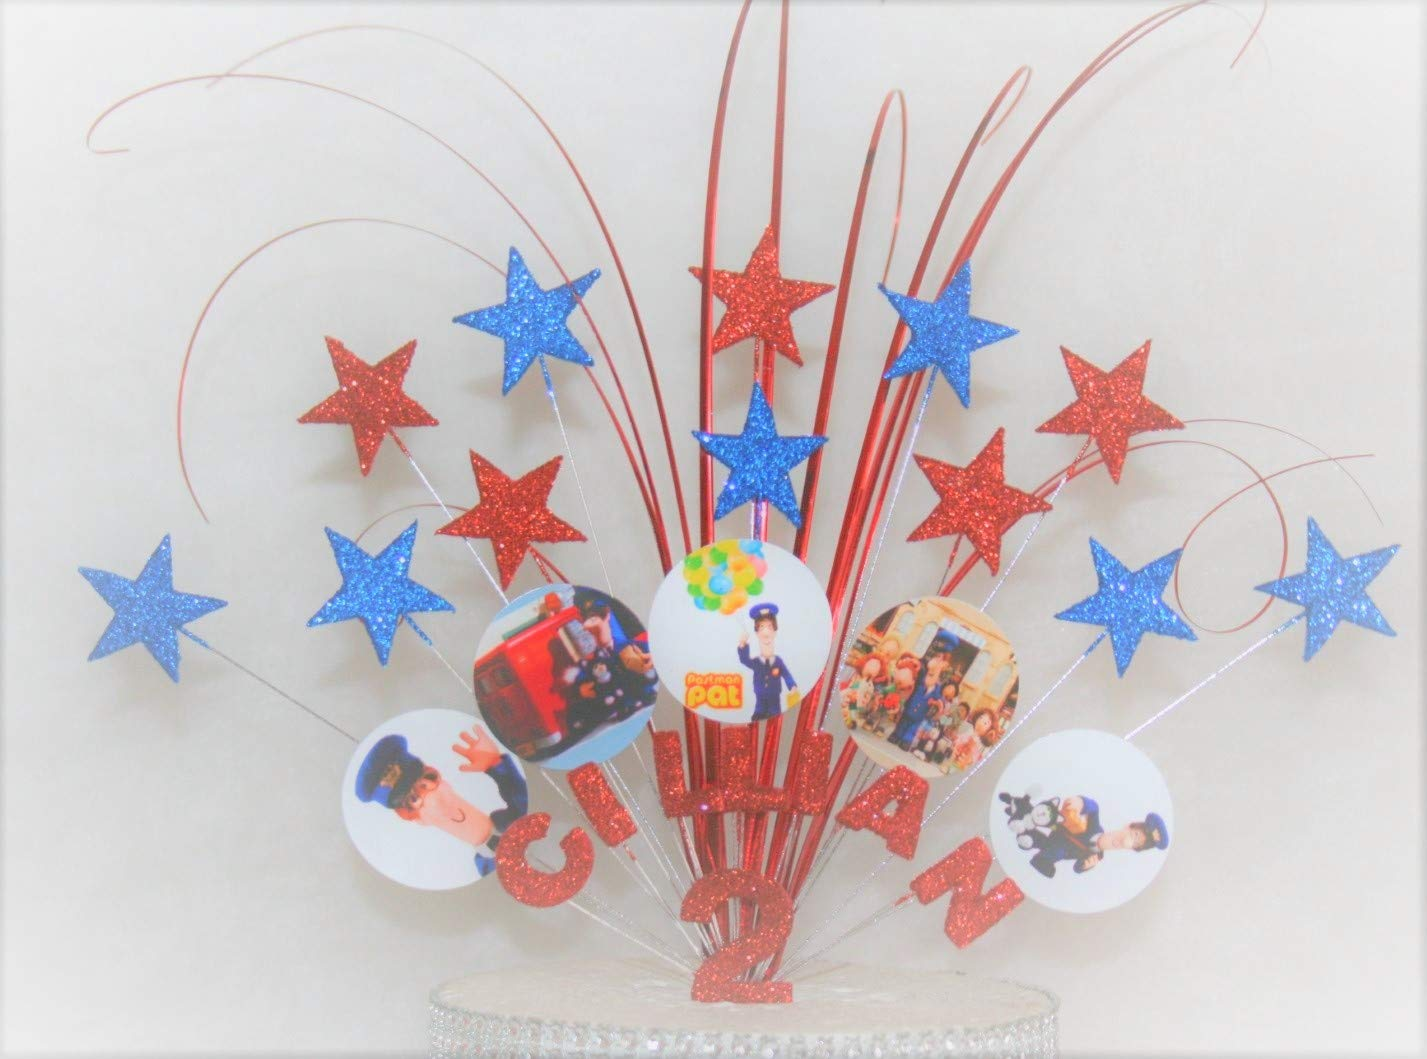 Postman Pat Cake Topper Cake Decoration Explosion Fireworks Glitter//No Glitter Stars on Wires Any Age 1st 2nd 3rd 4th 5th 6th Personalised Any Theme 001